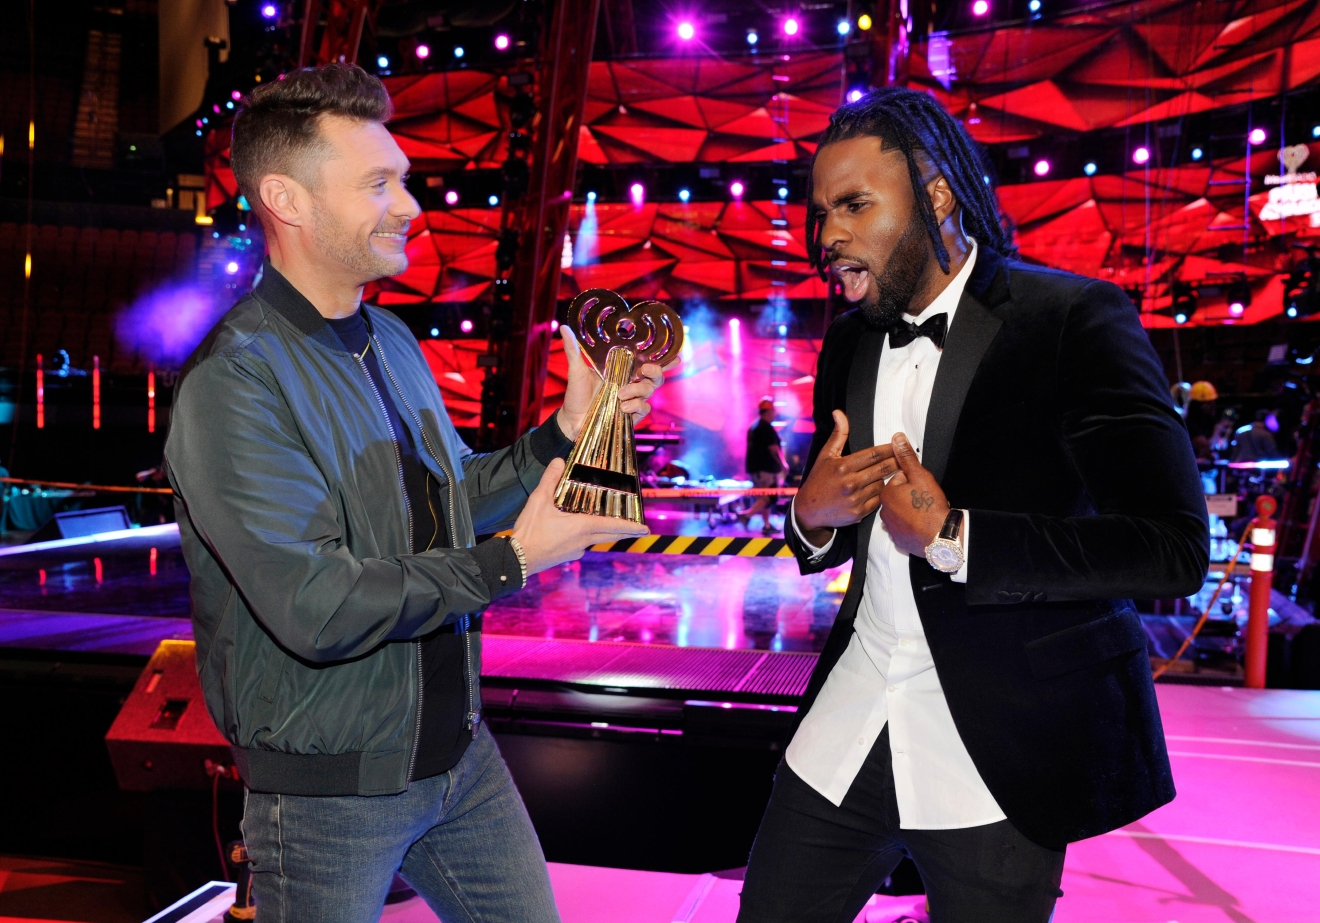 Host Ryan Seacrest, left, pretends to hand an award to singer Jason Derulo at the press preview day for the 2017 iHeartRadio Music Awards at The Forum on Thursday, March 2, 2017, in Inglewood, Calif. The annual pop music awards show will be held on Sunday at The Forum. (Photo by Chris Pizzello/Invision/AP)